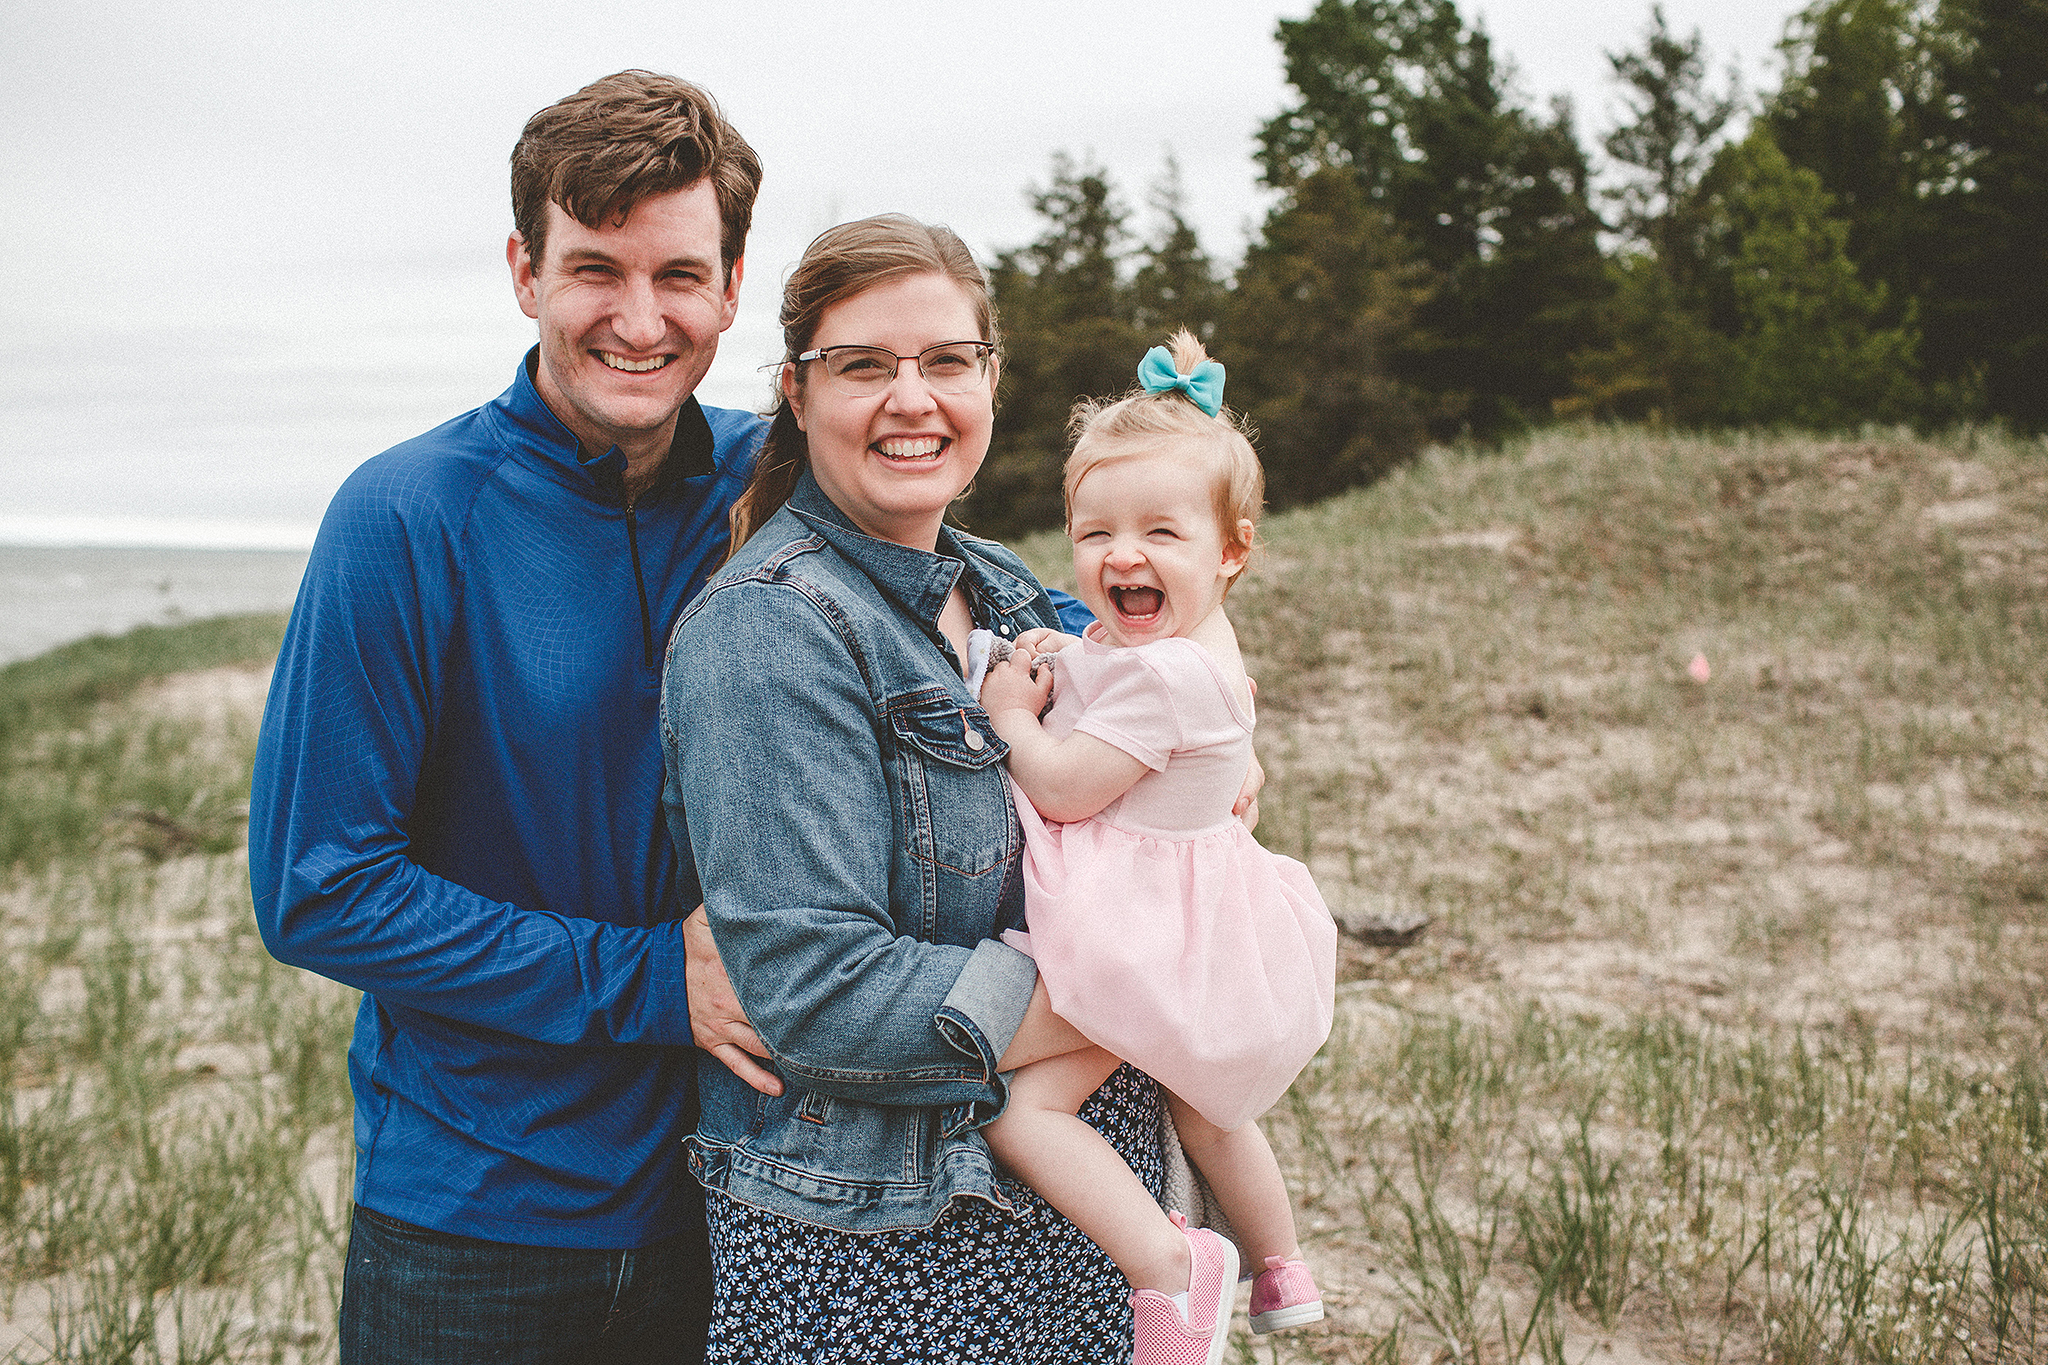 Family photograph of mom, dad, baby on the beach | Sheboygan, WI Family photographer | Chrissy Deming photography